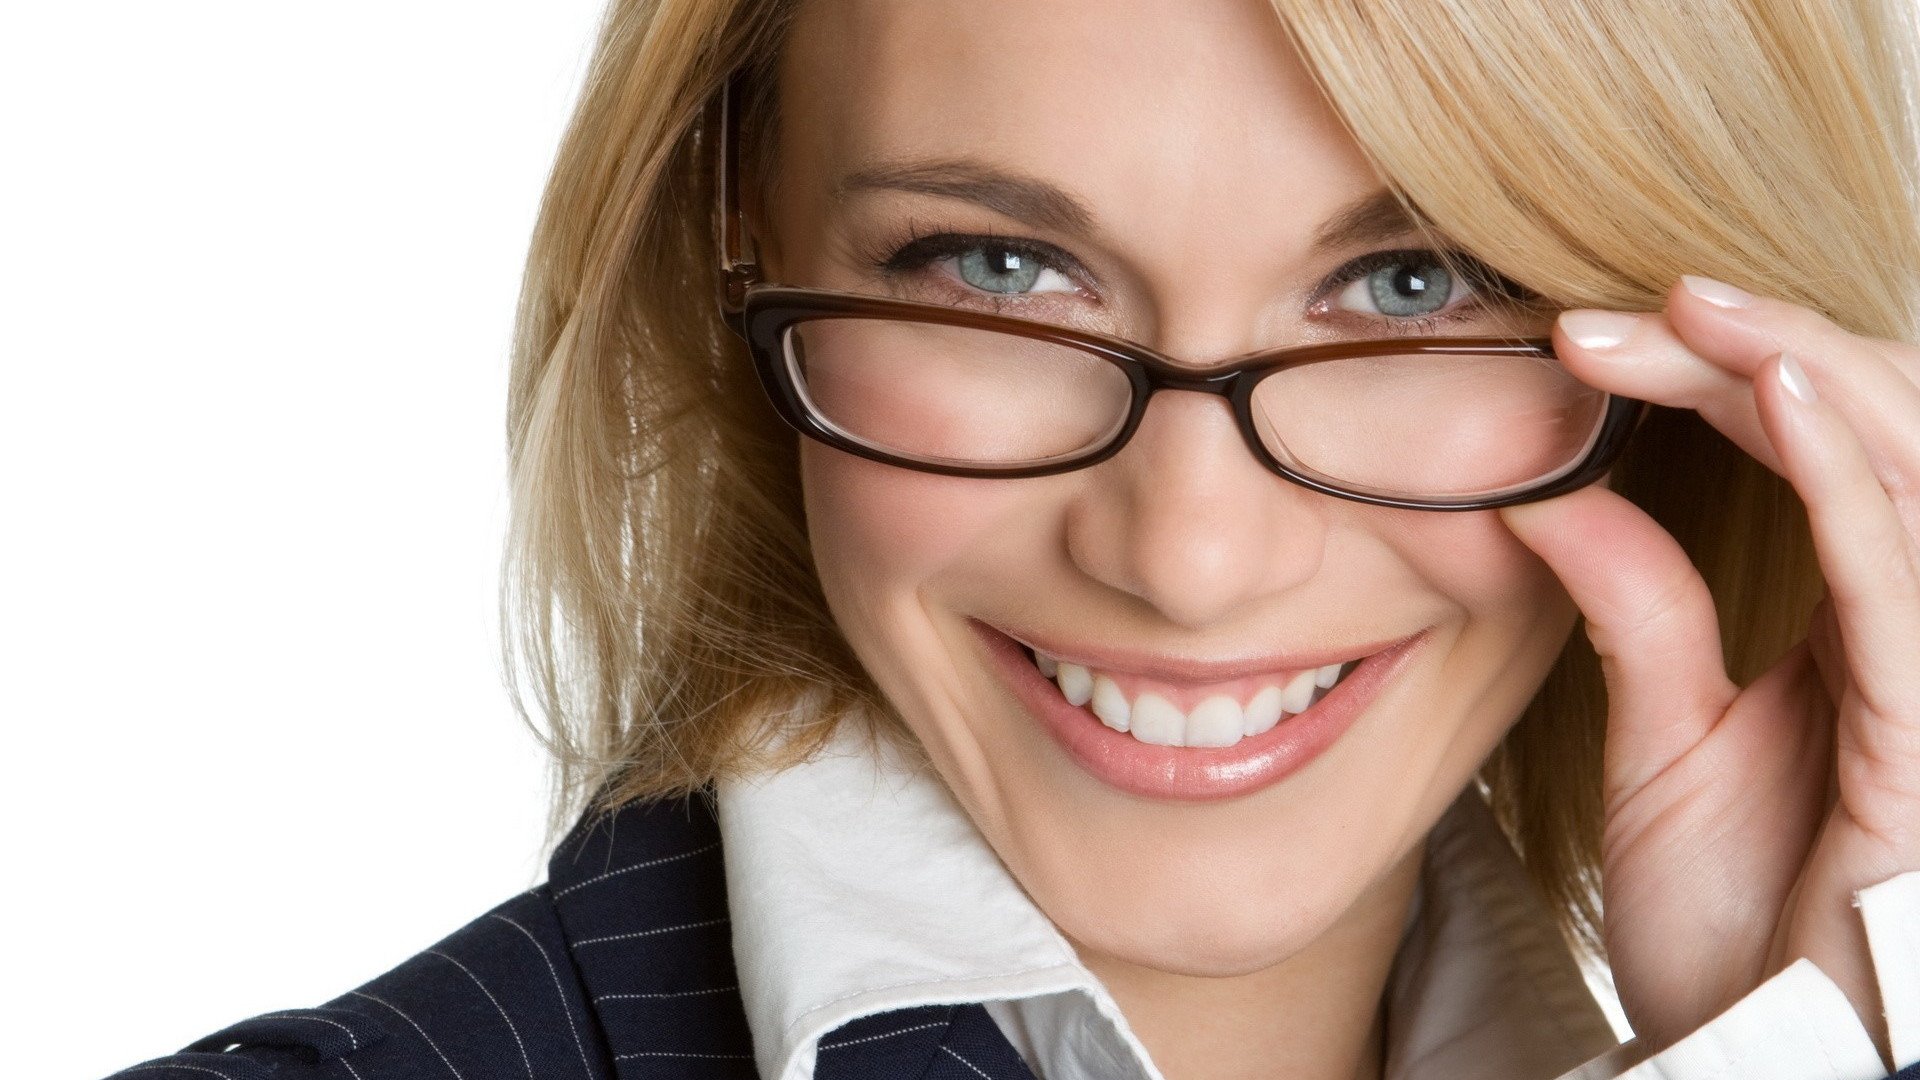 smile-gray-eye-blonde-business-woman.jpg